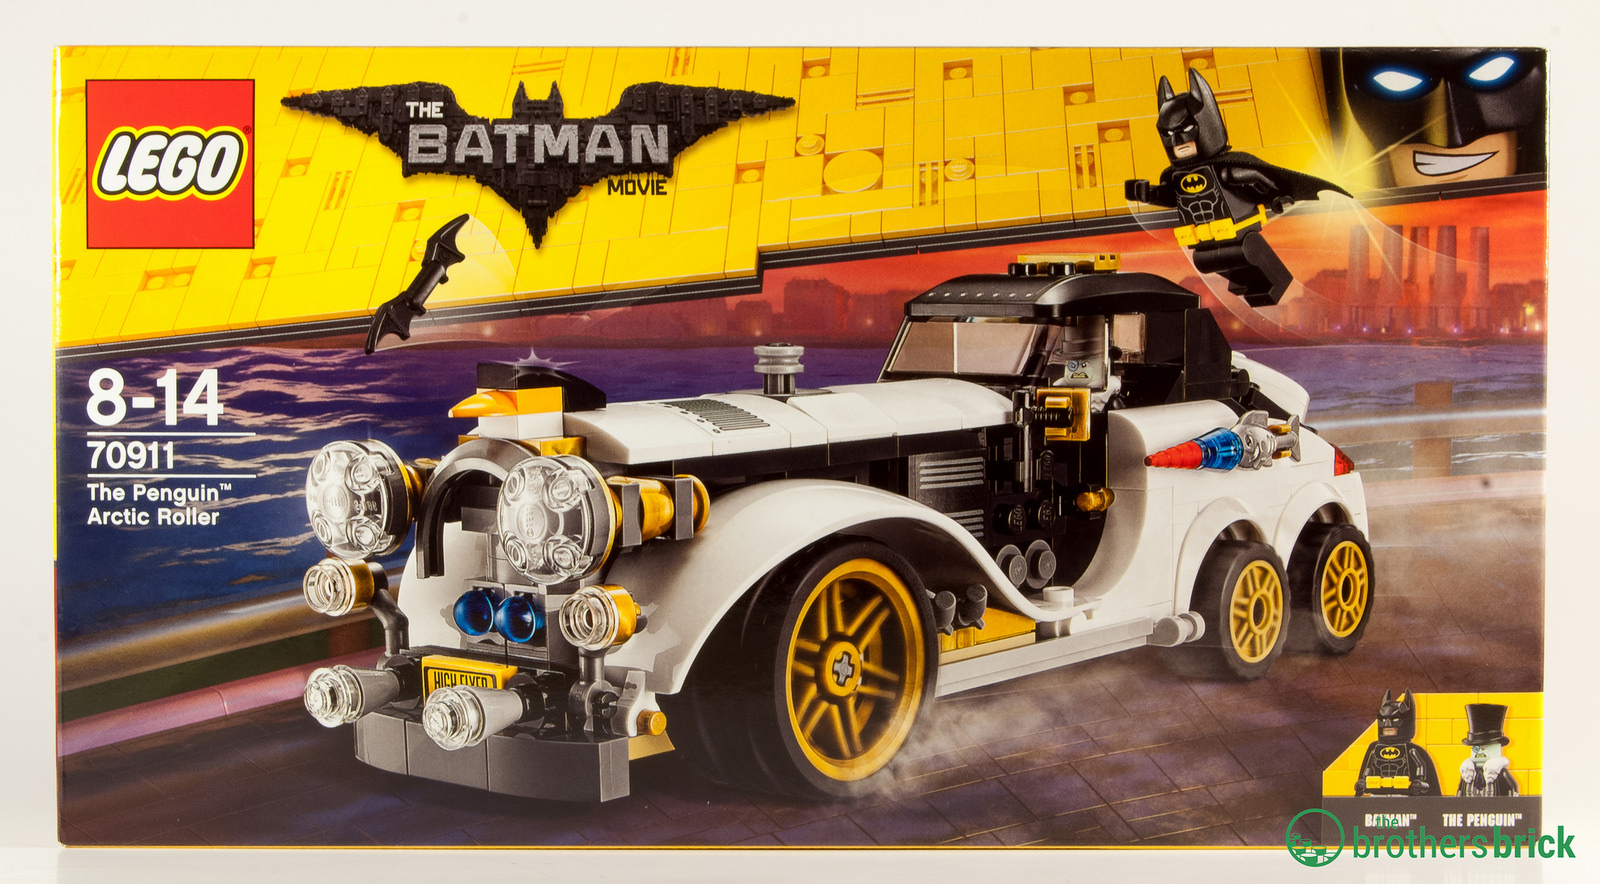 Lego Batman Movie 70911 The Penguin Arctic Roller Review The Brothers Brick The Brothers Brick